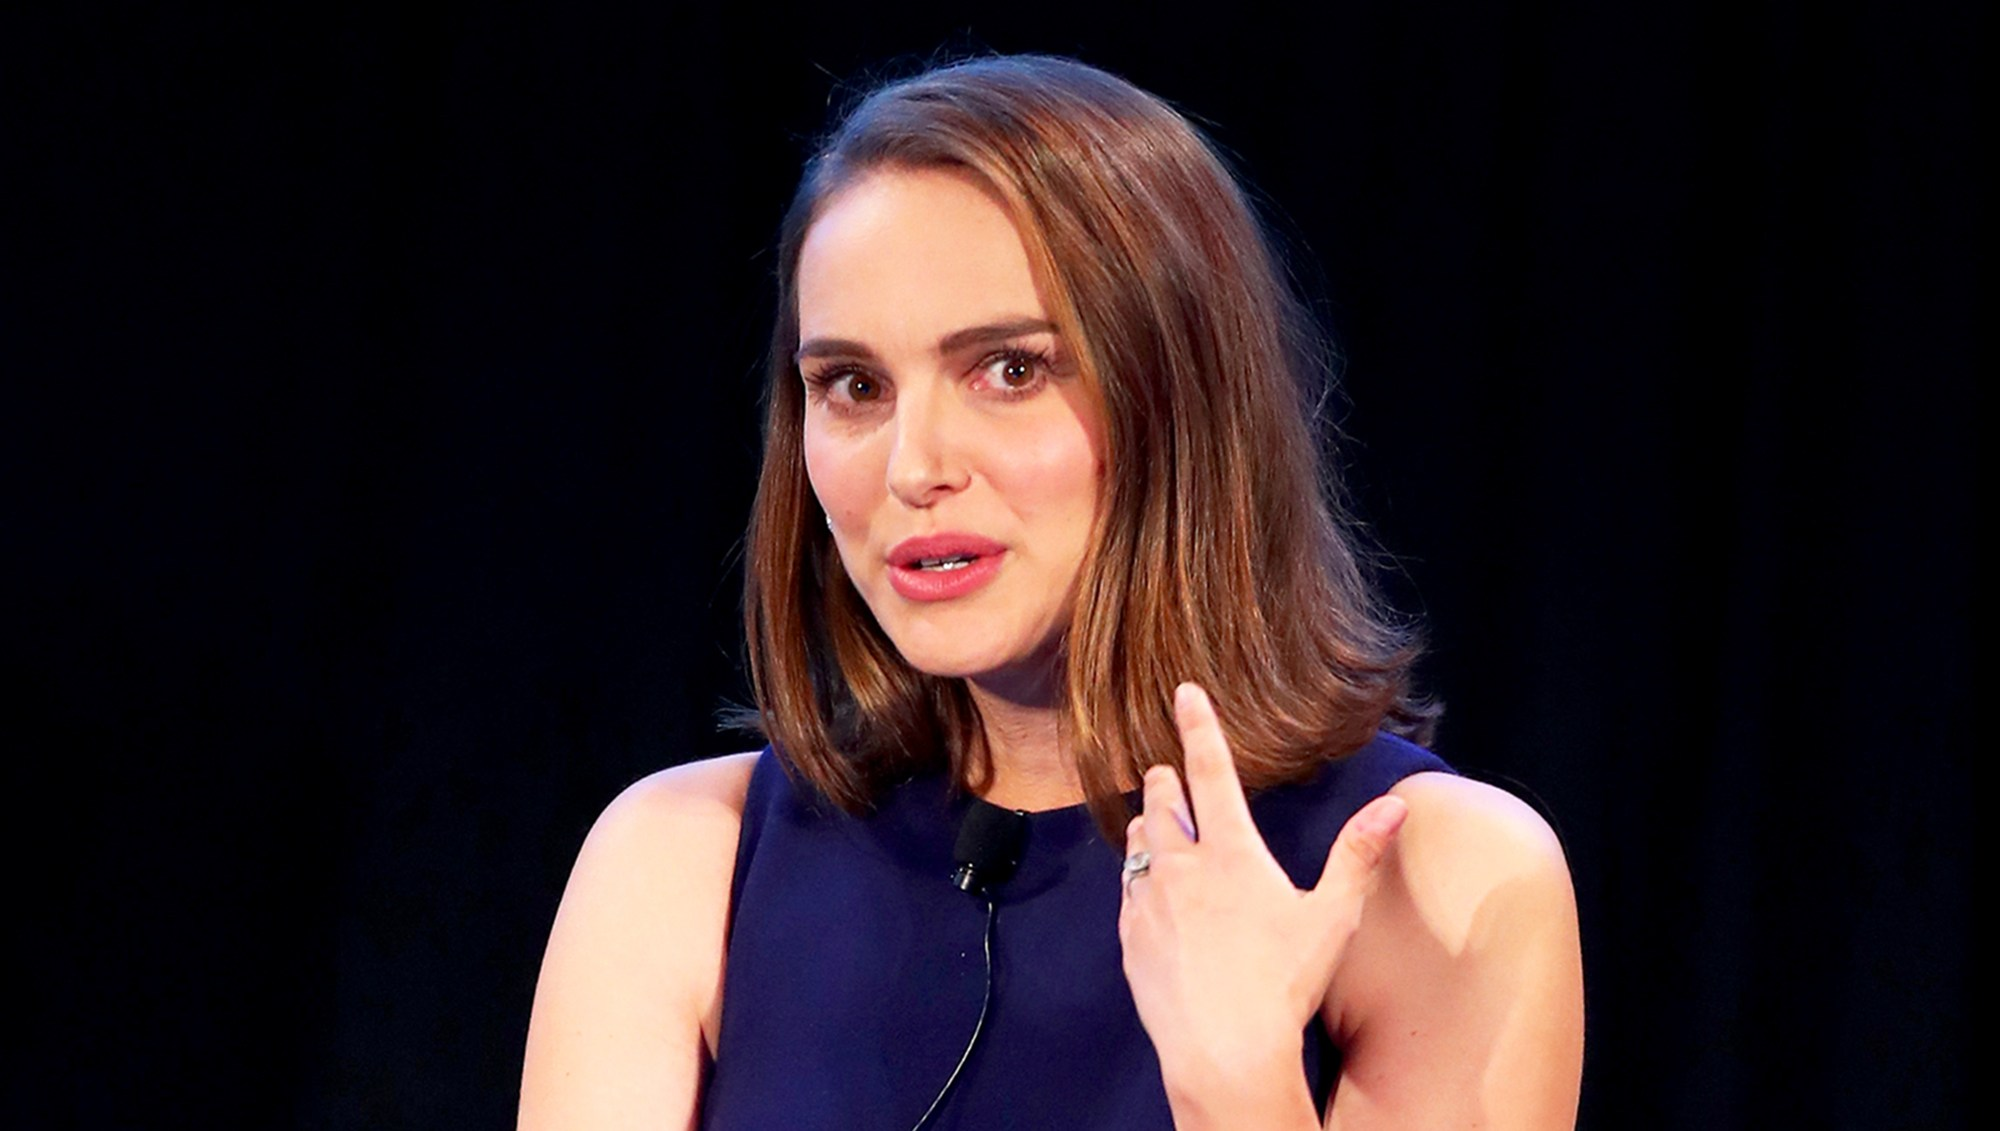 Natalie Portman Opens Up About Sexual Harassment in Hollywood: 'I Think Every Woman Has Experienced This'